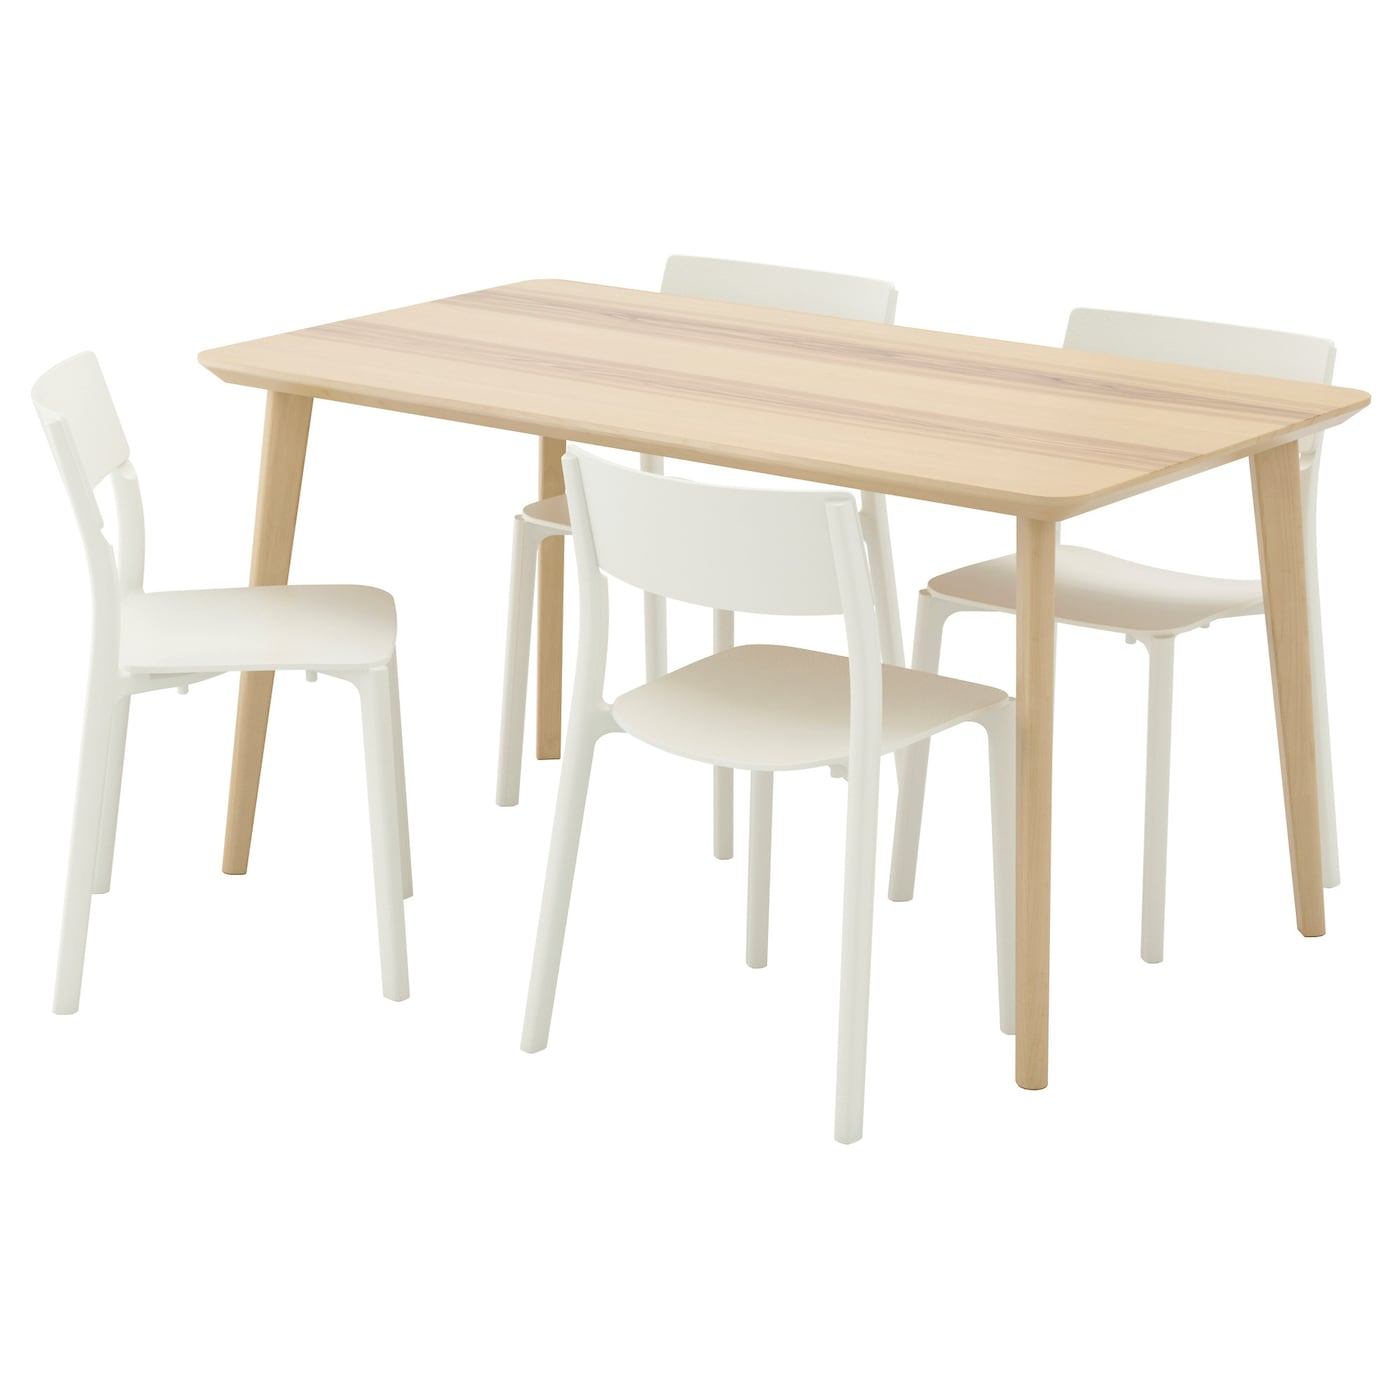 Dining table sets dining room sets ikea - Petite table cuisine ikea ...